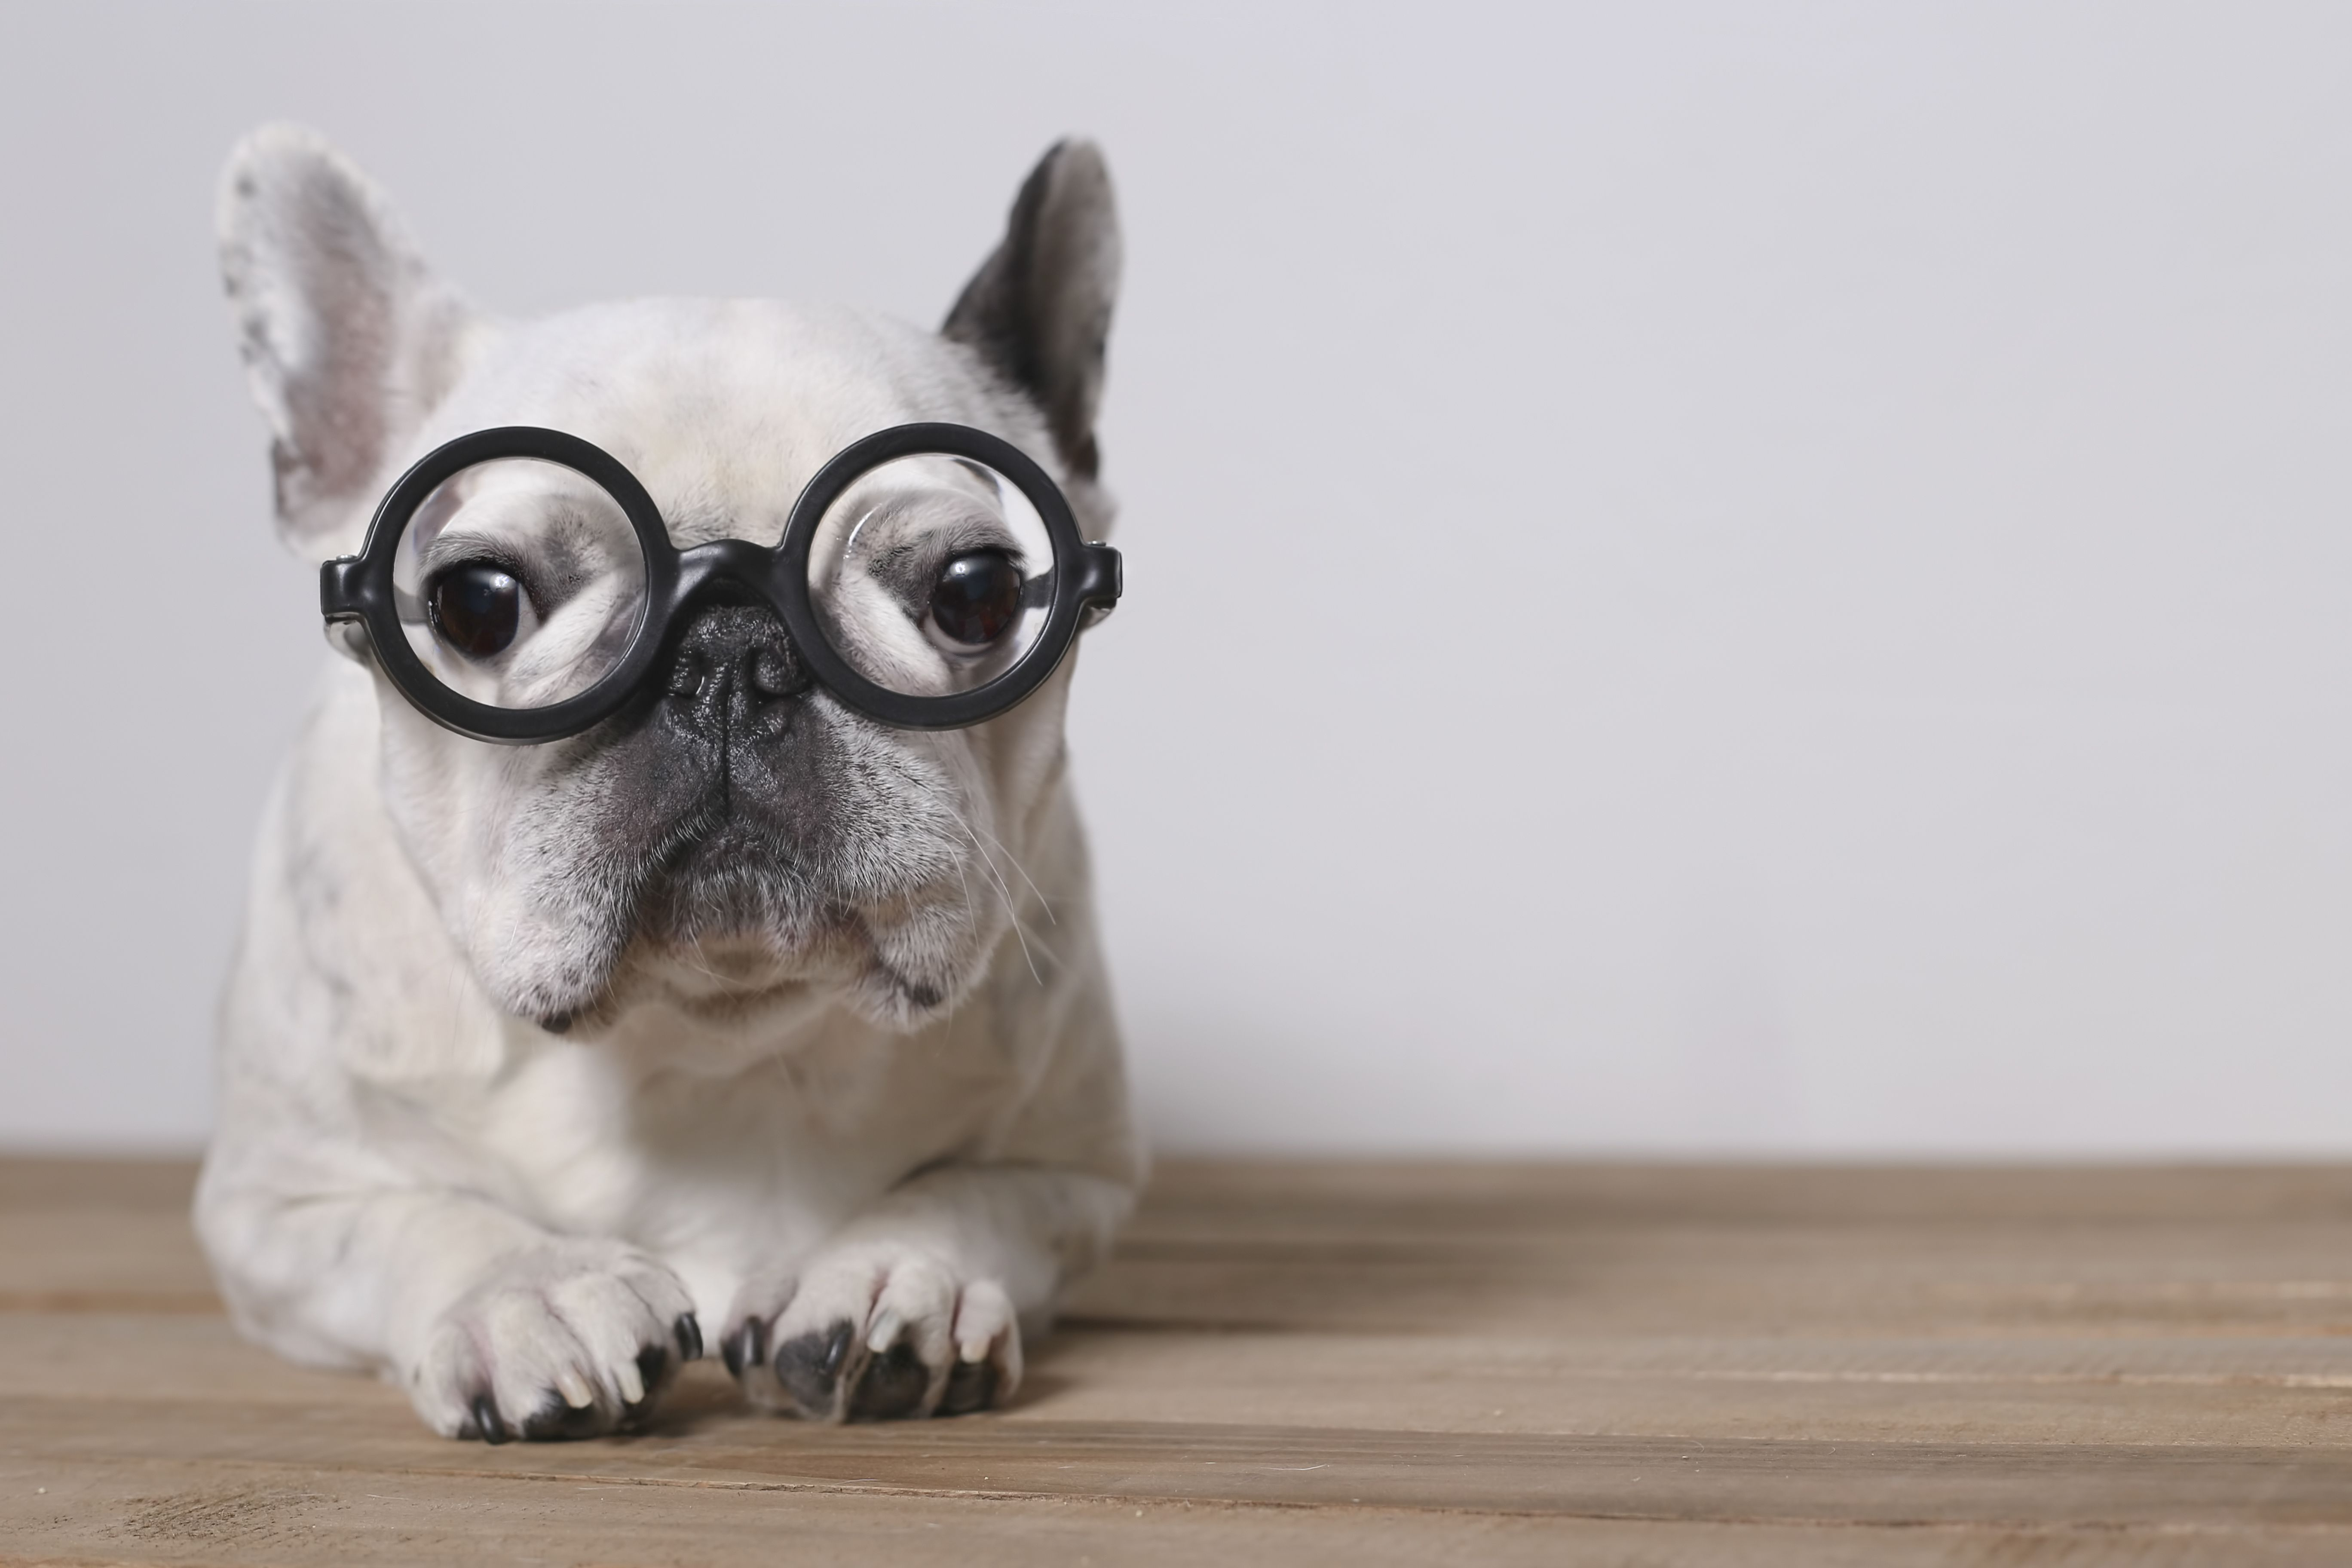 An Introduction to Dog Intelligence and Emotion